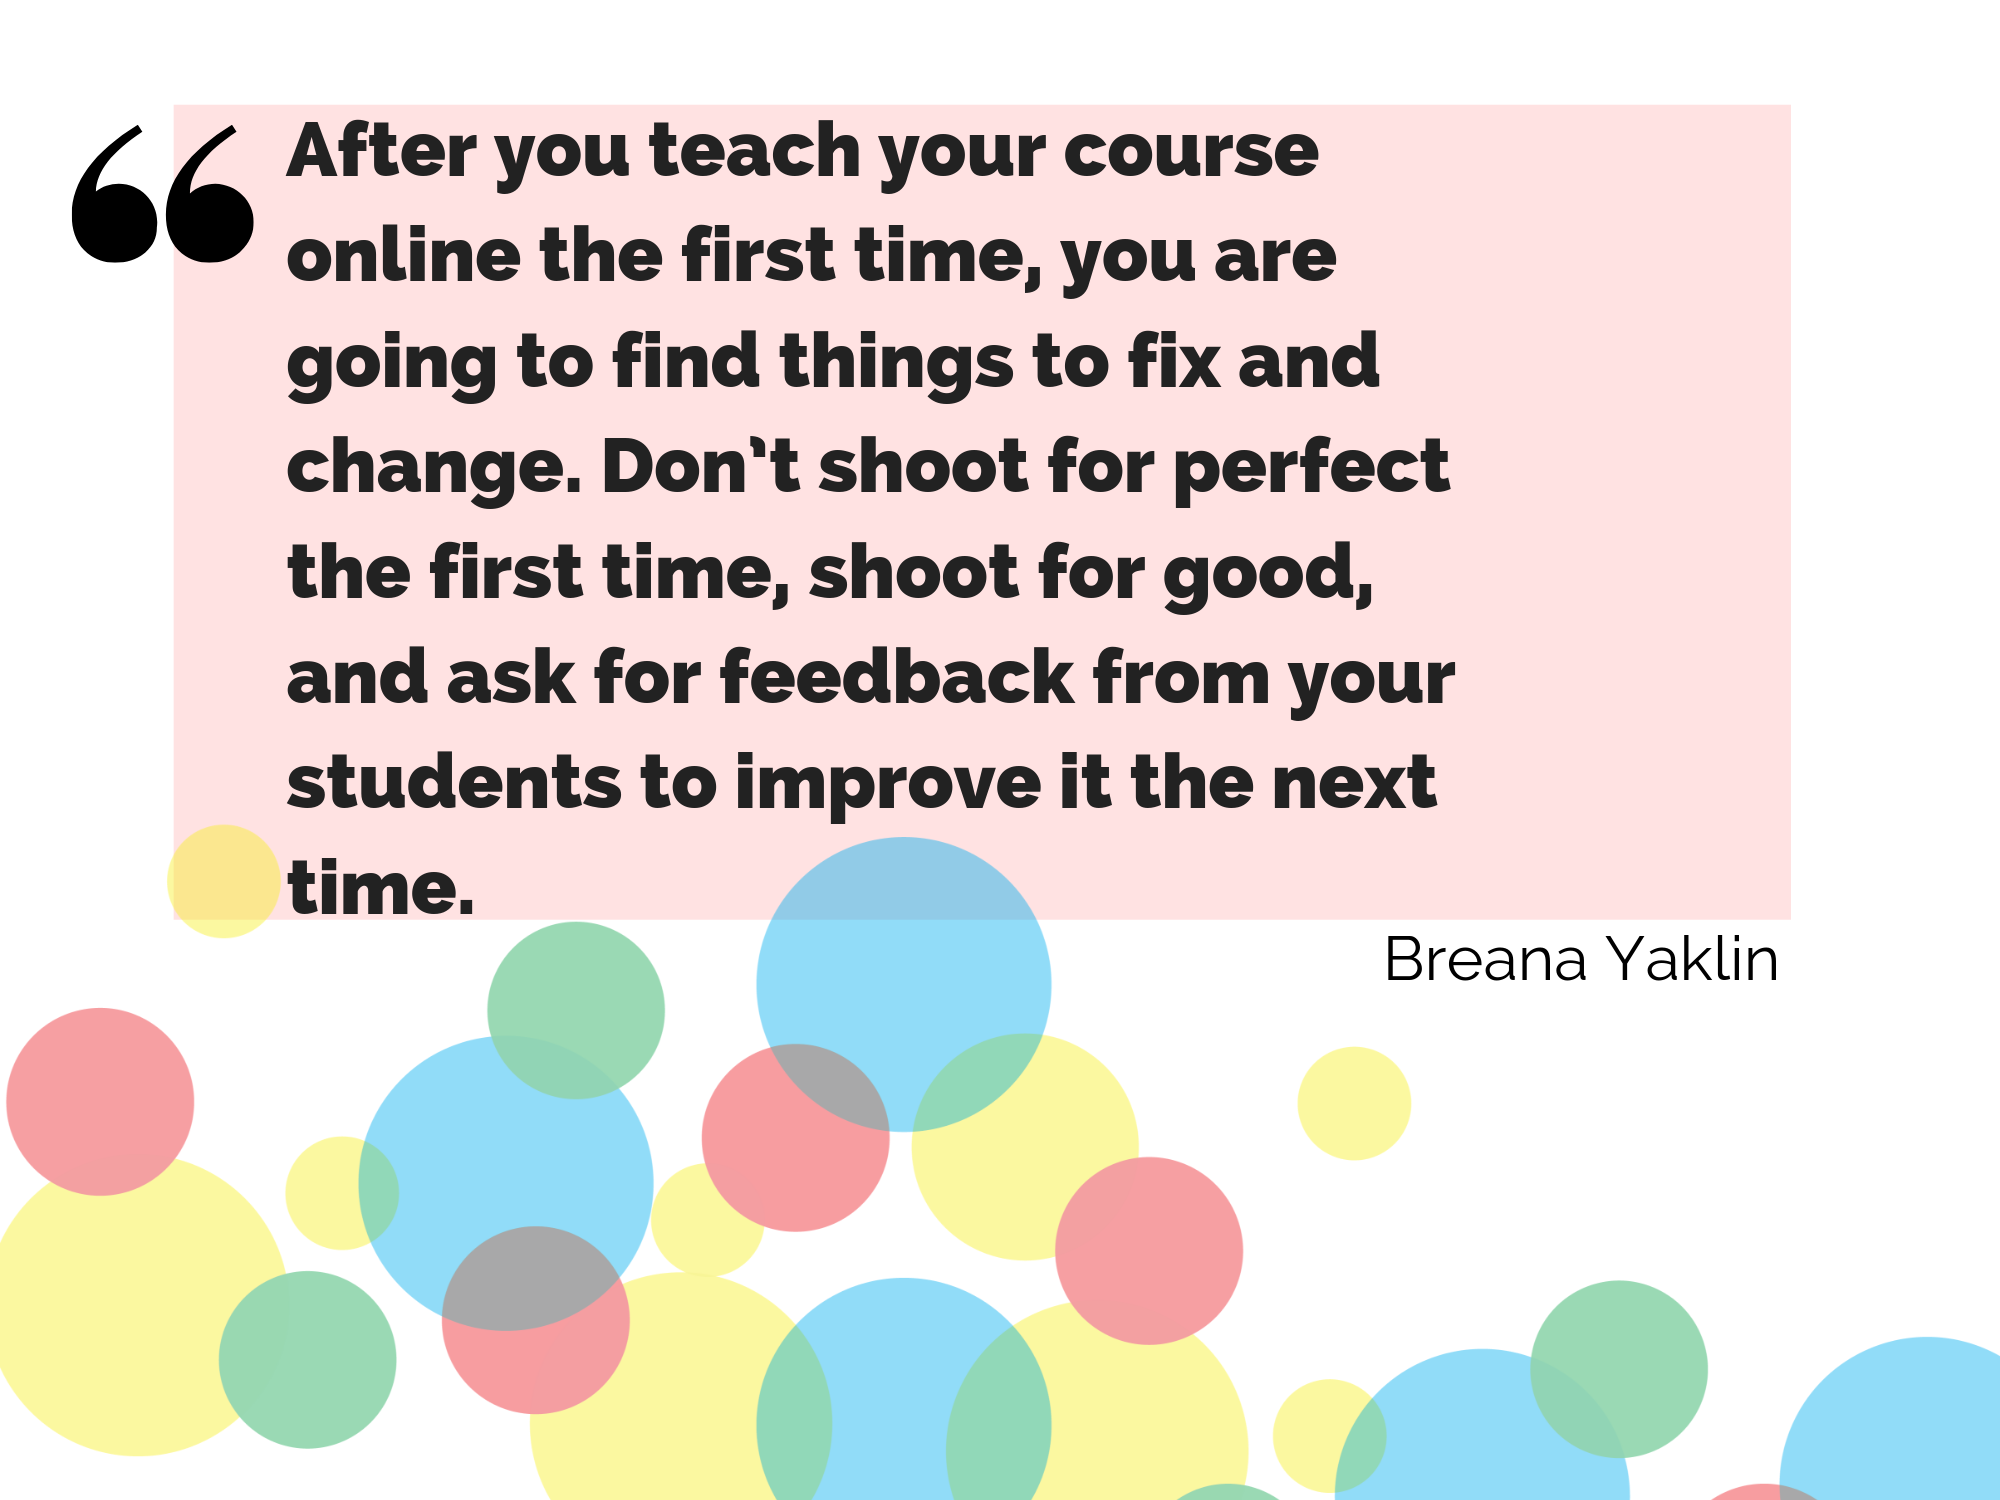 """After you teach your course online the first time, you are going to find things to fix and change. Don't shoot for perfect the first time, shoot for good, and ask for feedback from your students to improve it the next time"" - quote from Breana Yaklin, blog author"